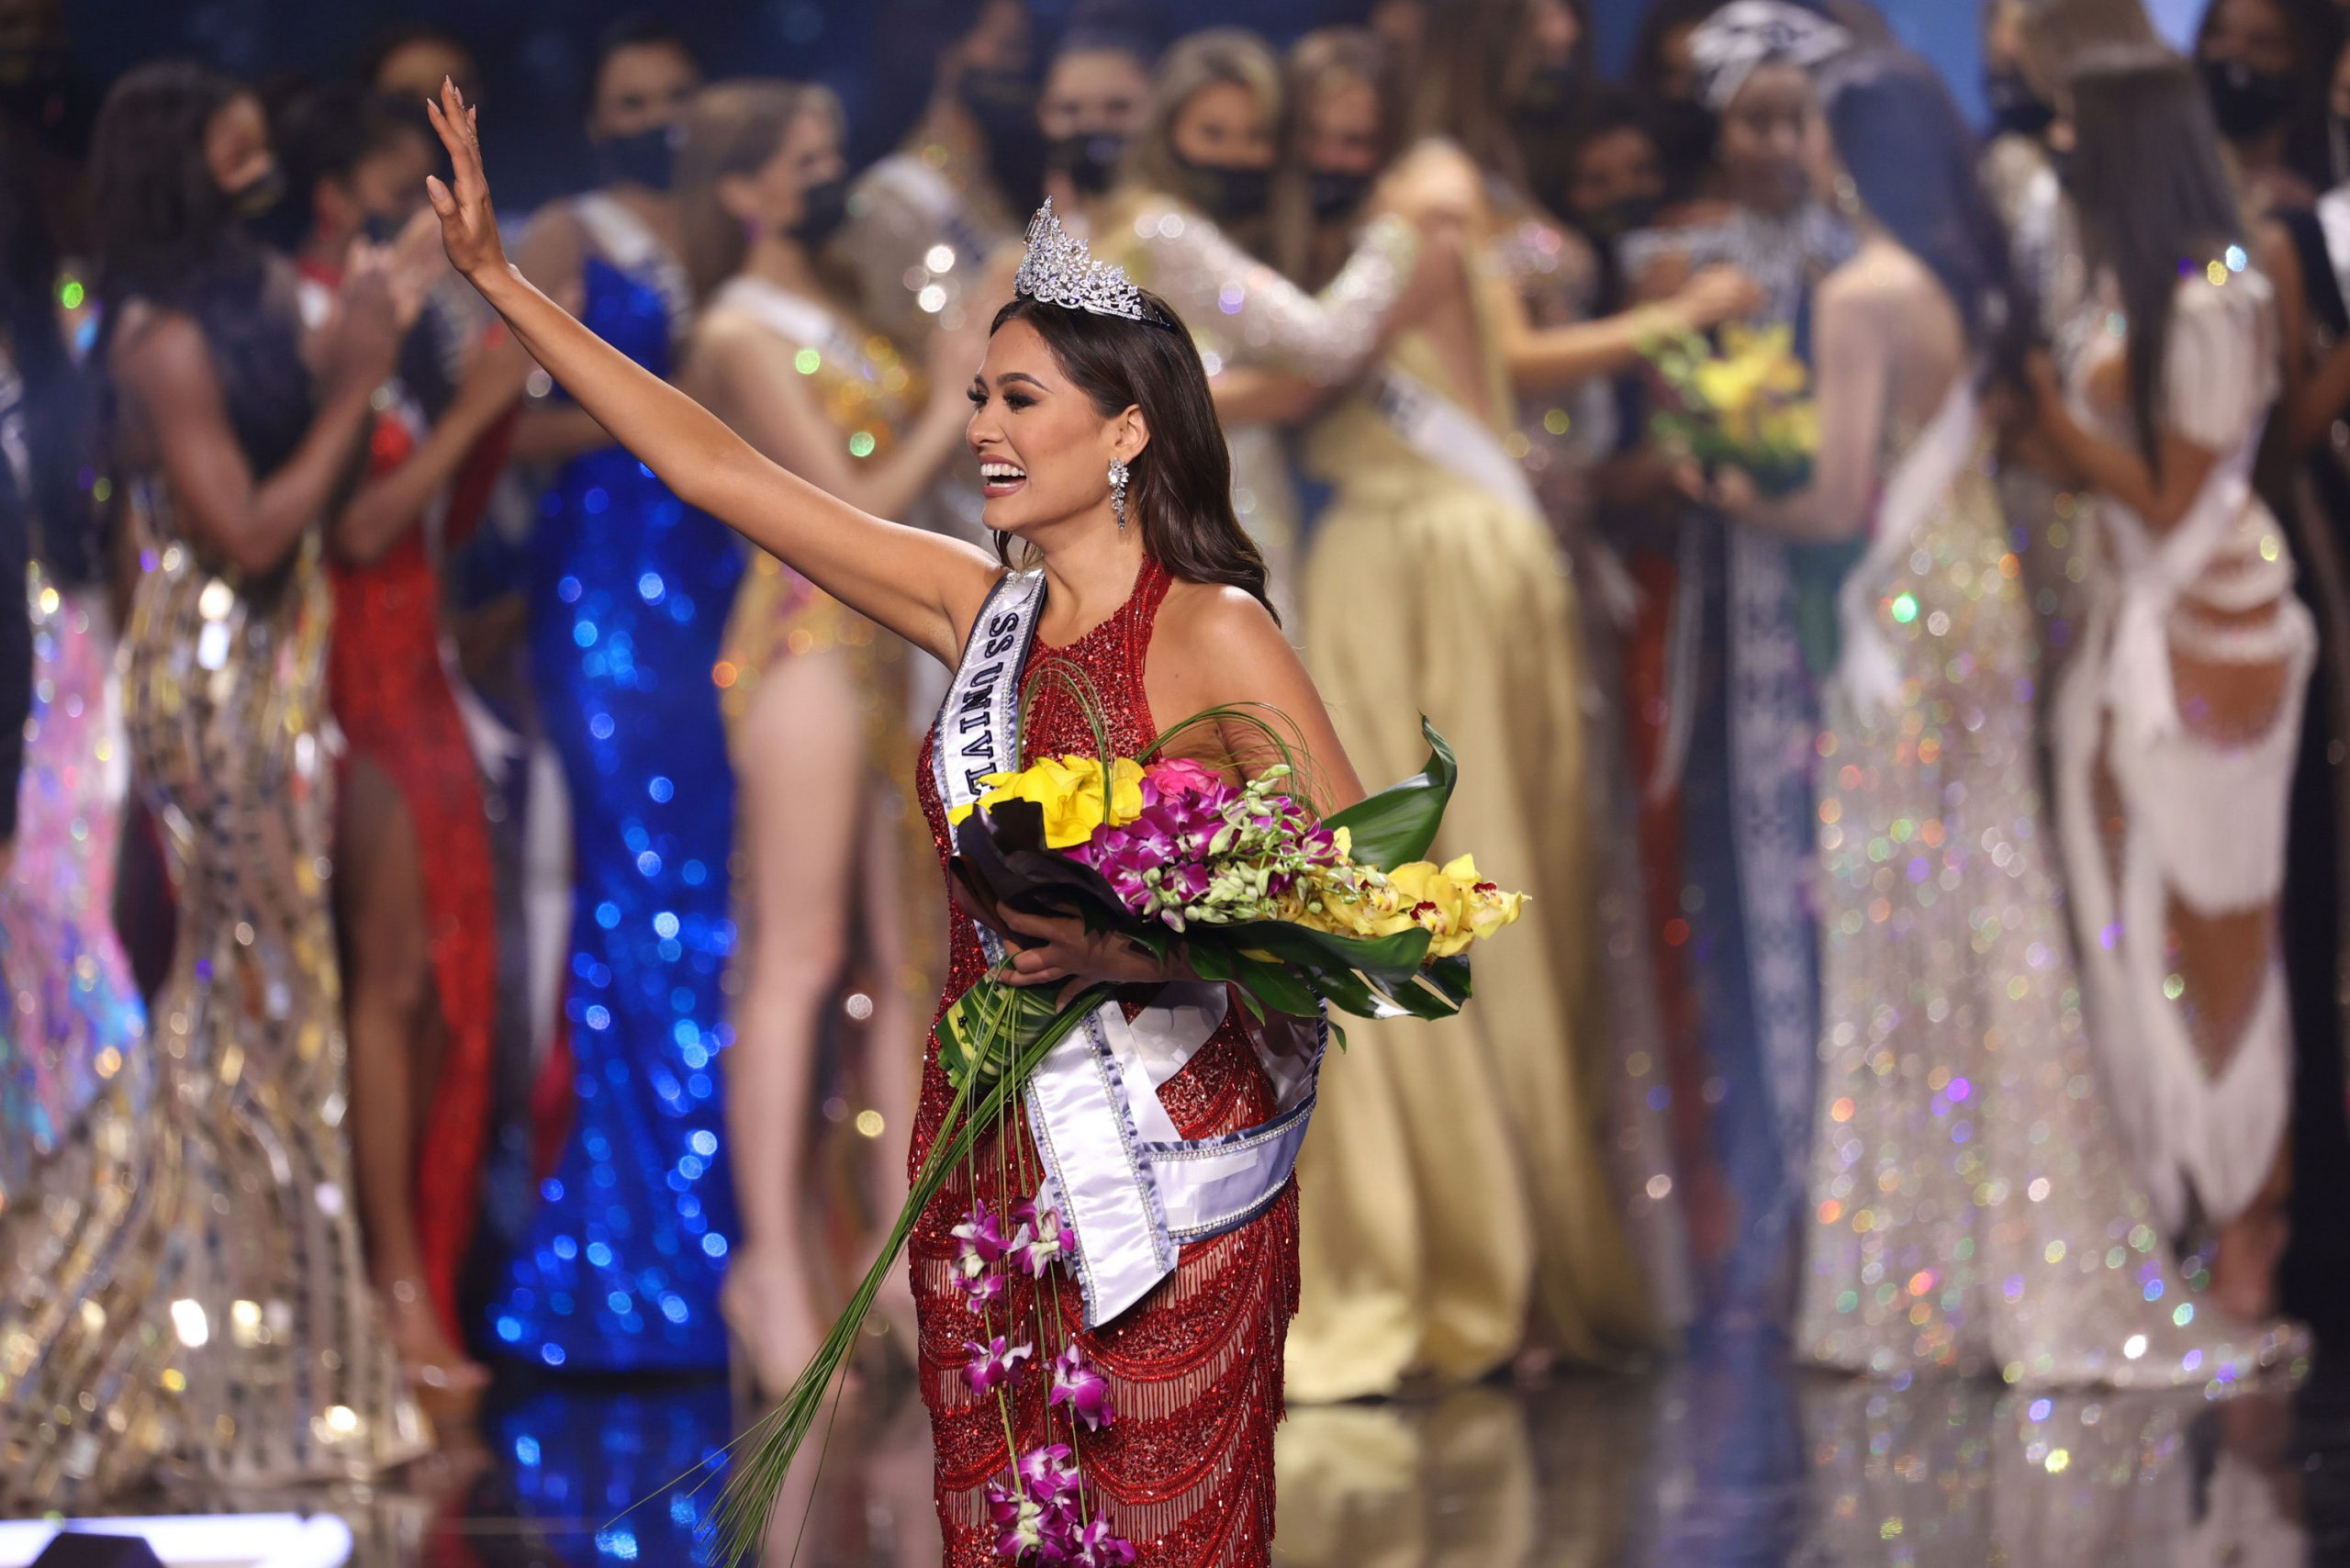 Miss Mexico Andrea Meza is crowned Miss Universe 2021 onstage at the Miss Universe 2021 Pageant at Seminole Hard Rock Hotel & Casino on May 16, 2021 in Hollywood, Florida.